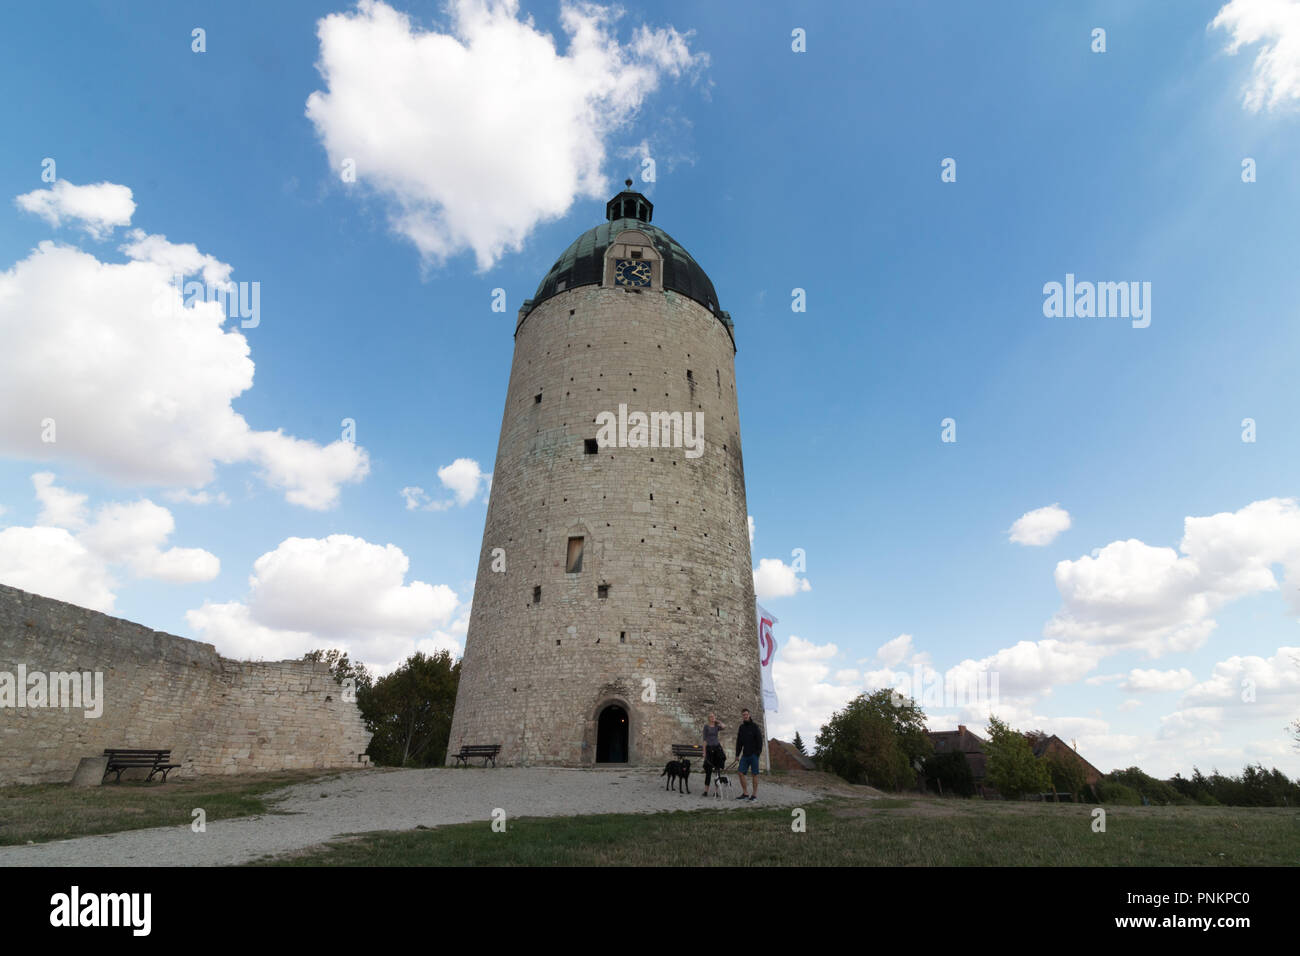 Freyburg, Germany - September 15, 2018: View of the keep 'Dicker Wilhelm', the last and only preserved of three round towers that once stood on the ca - Stock Image